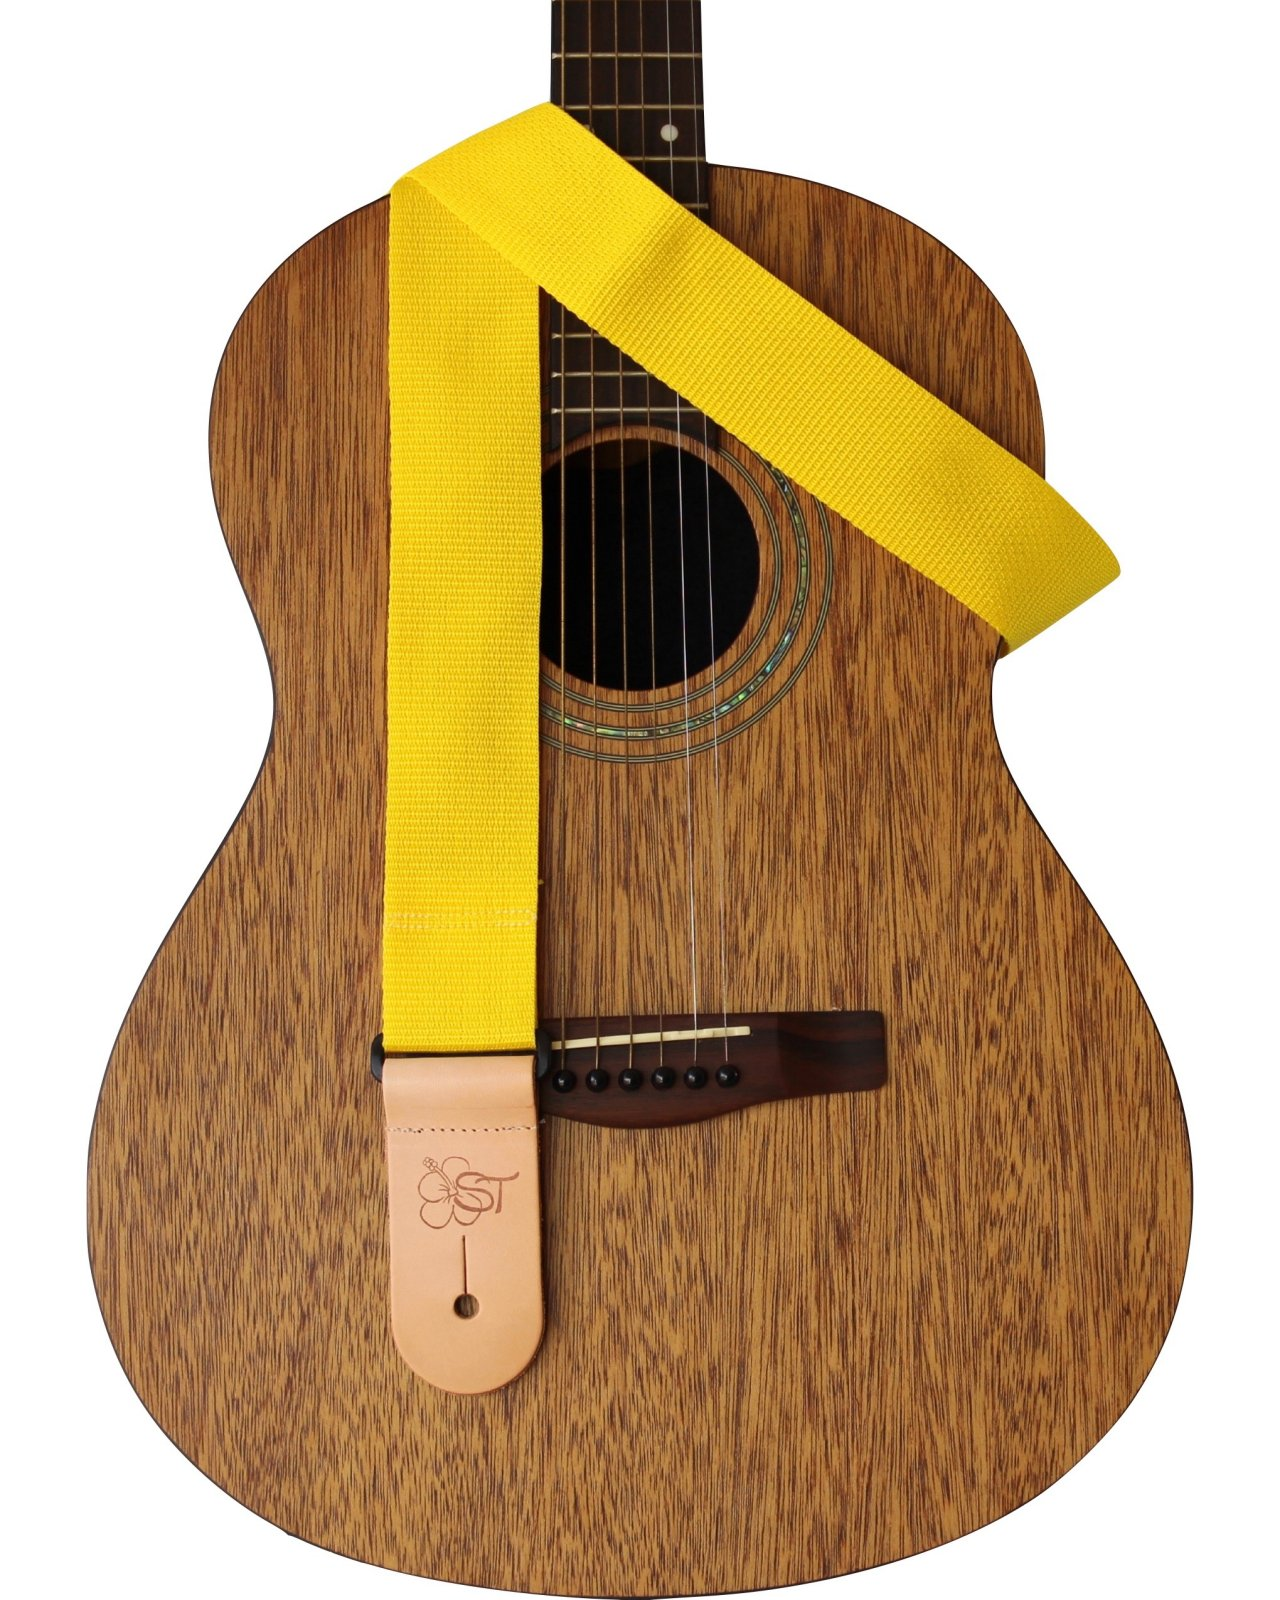 ST 2 Yellow Guitar Strap